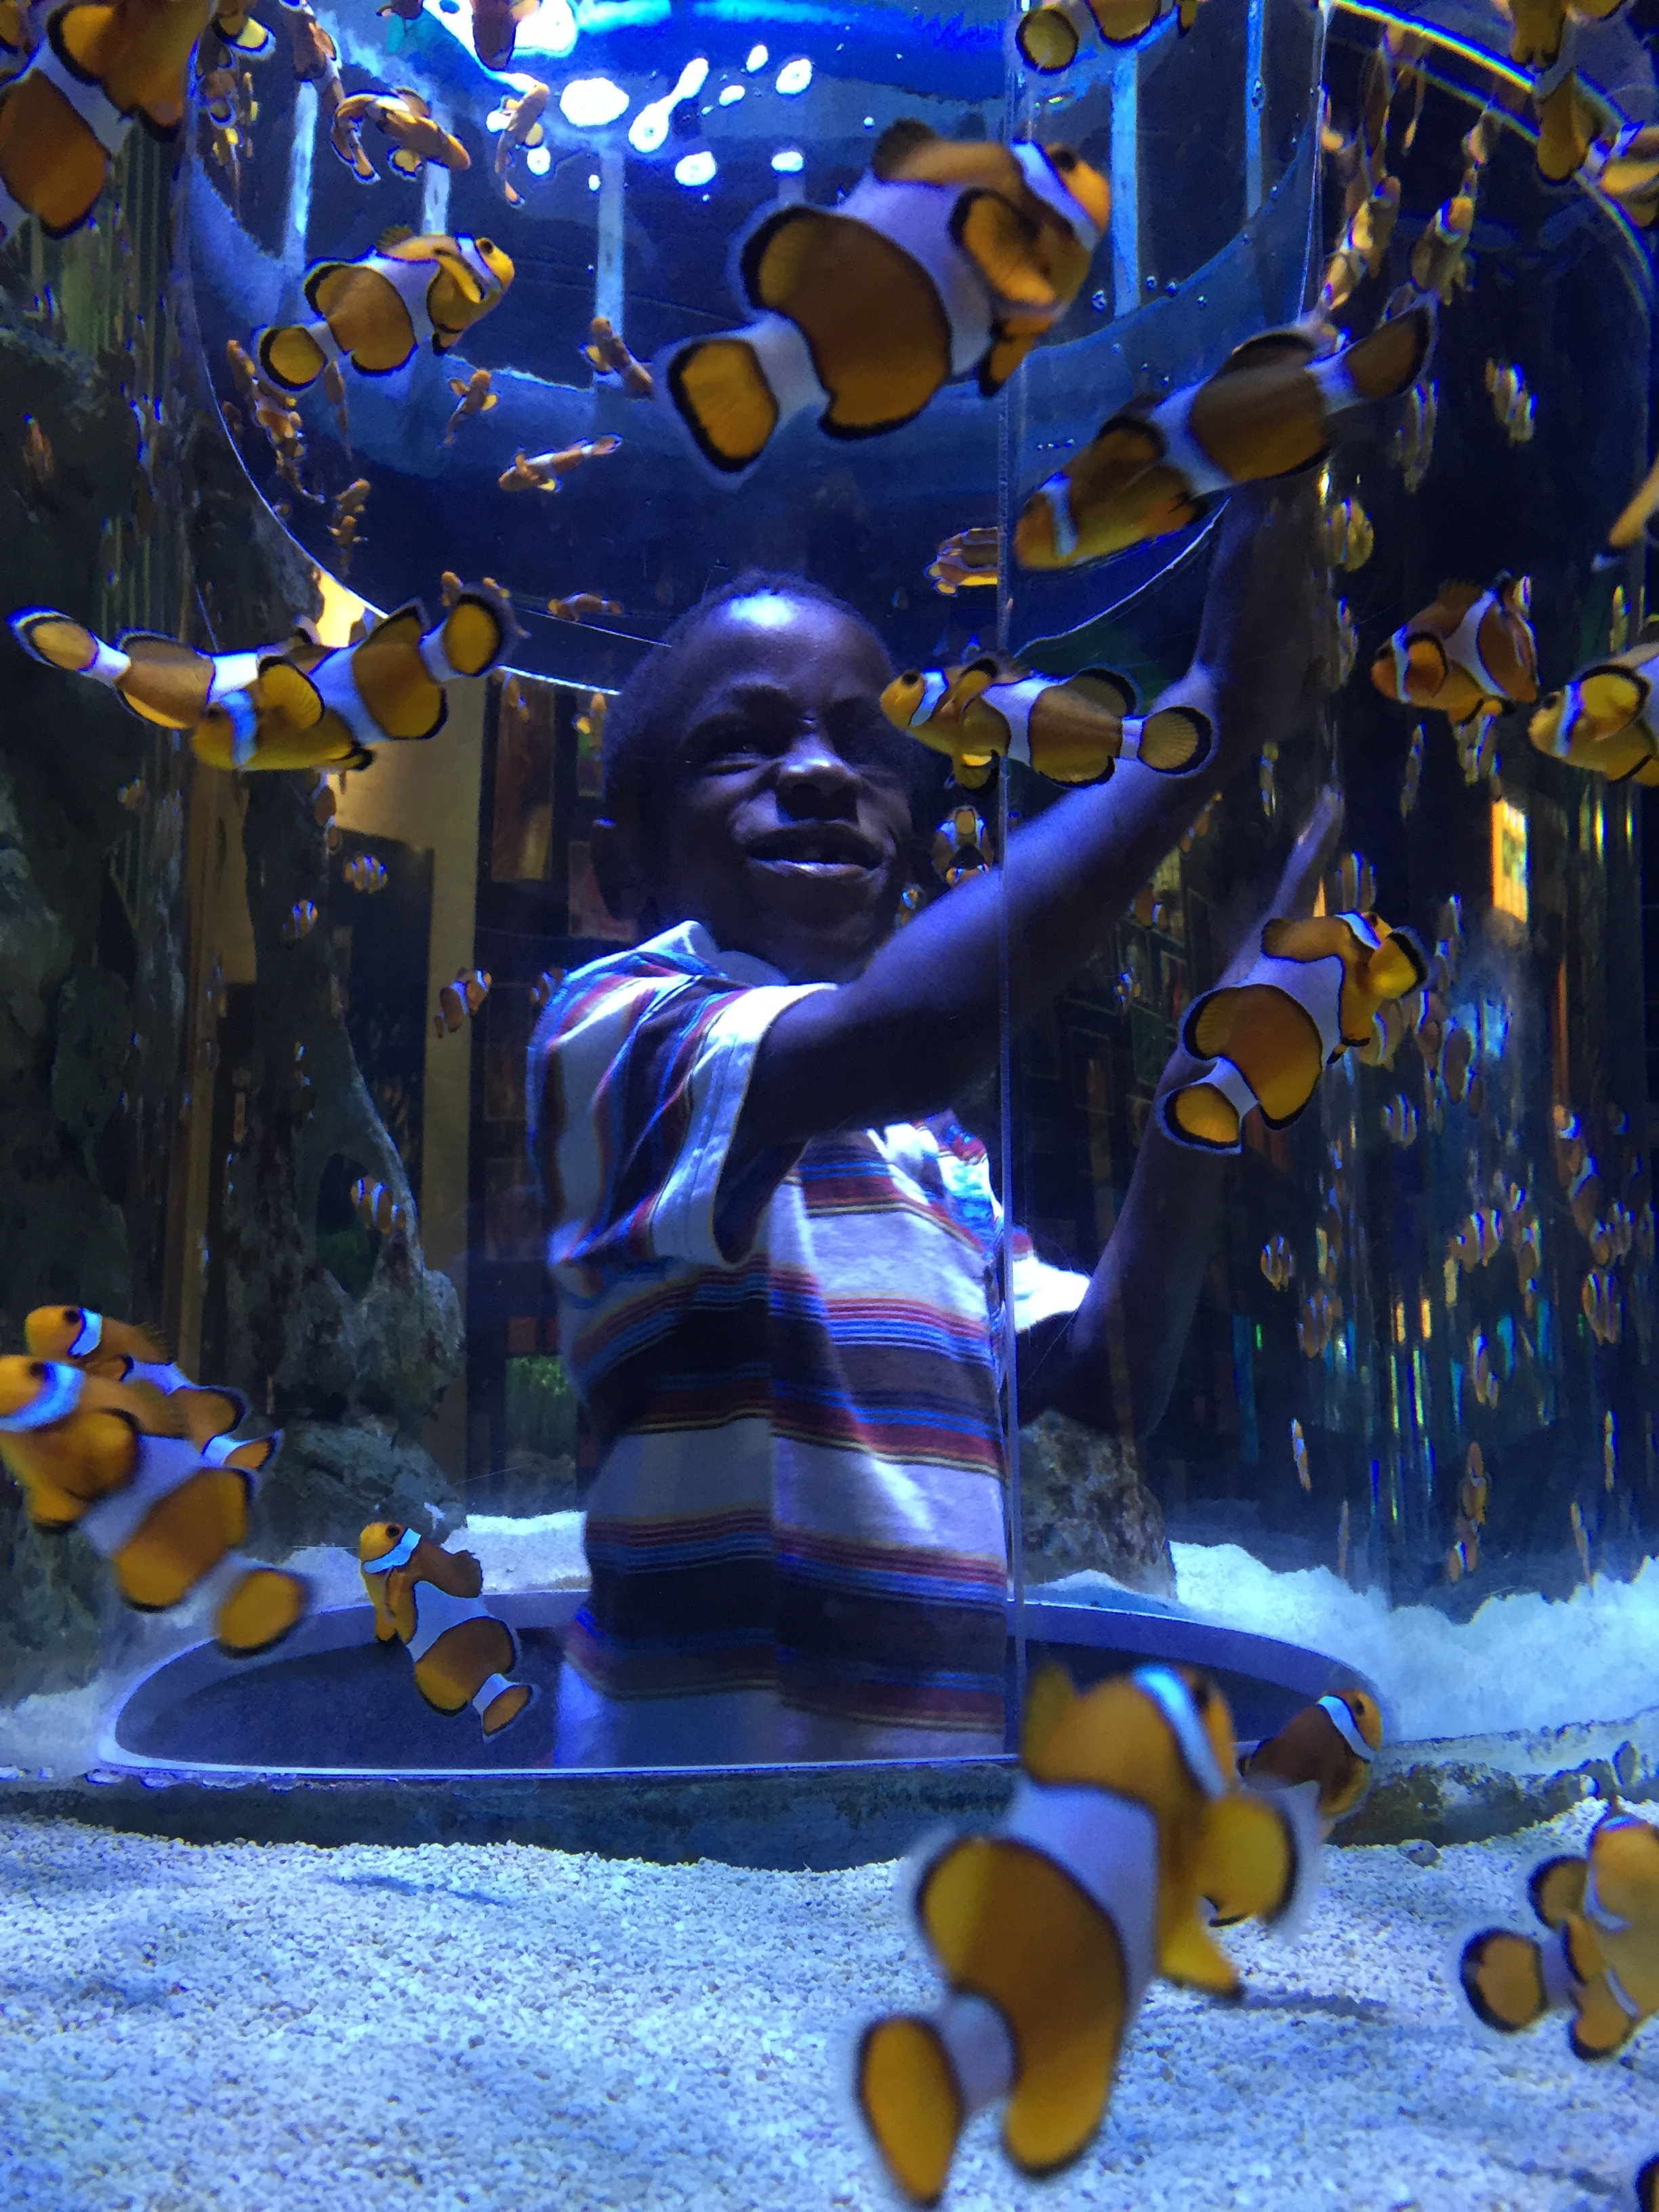 I think he was pretending to shoot the clown fish at this point. Boys.